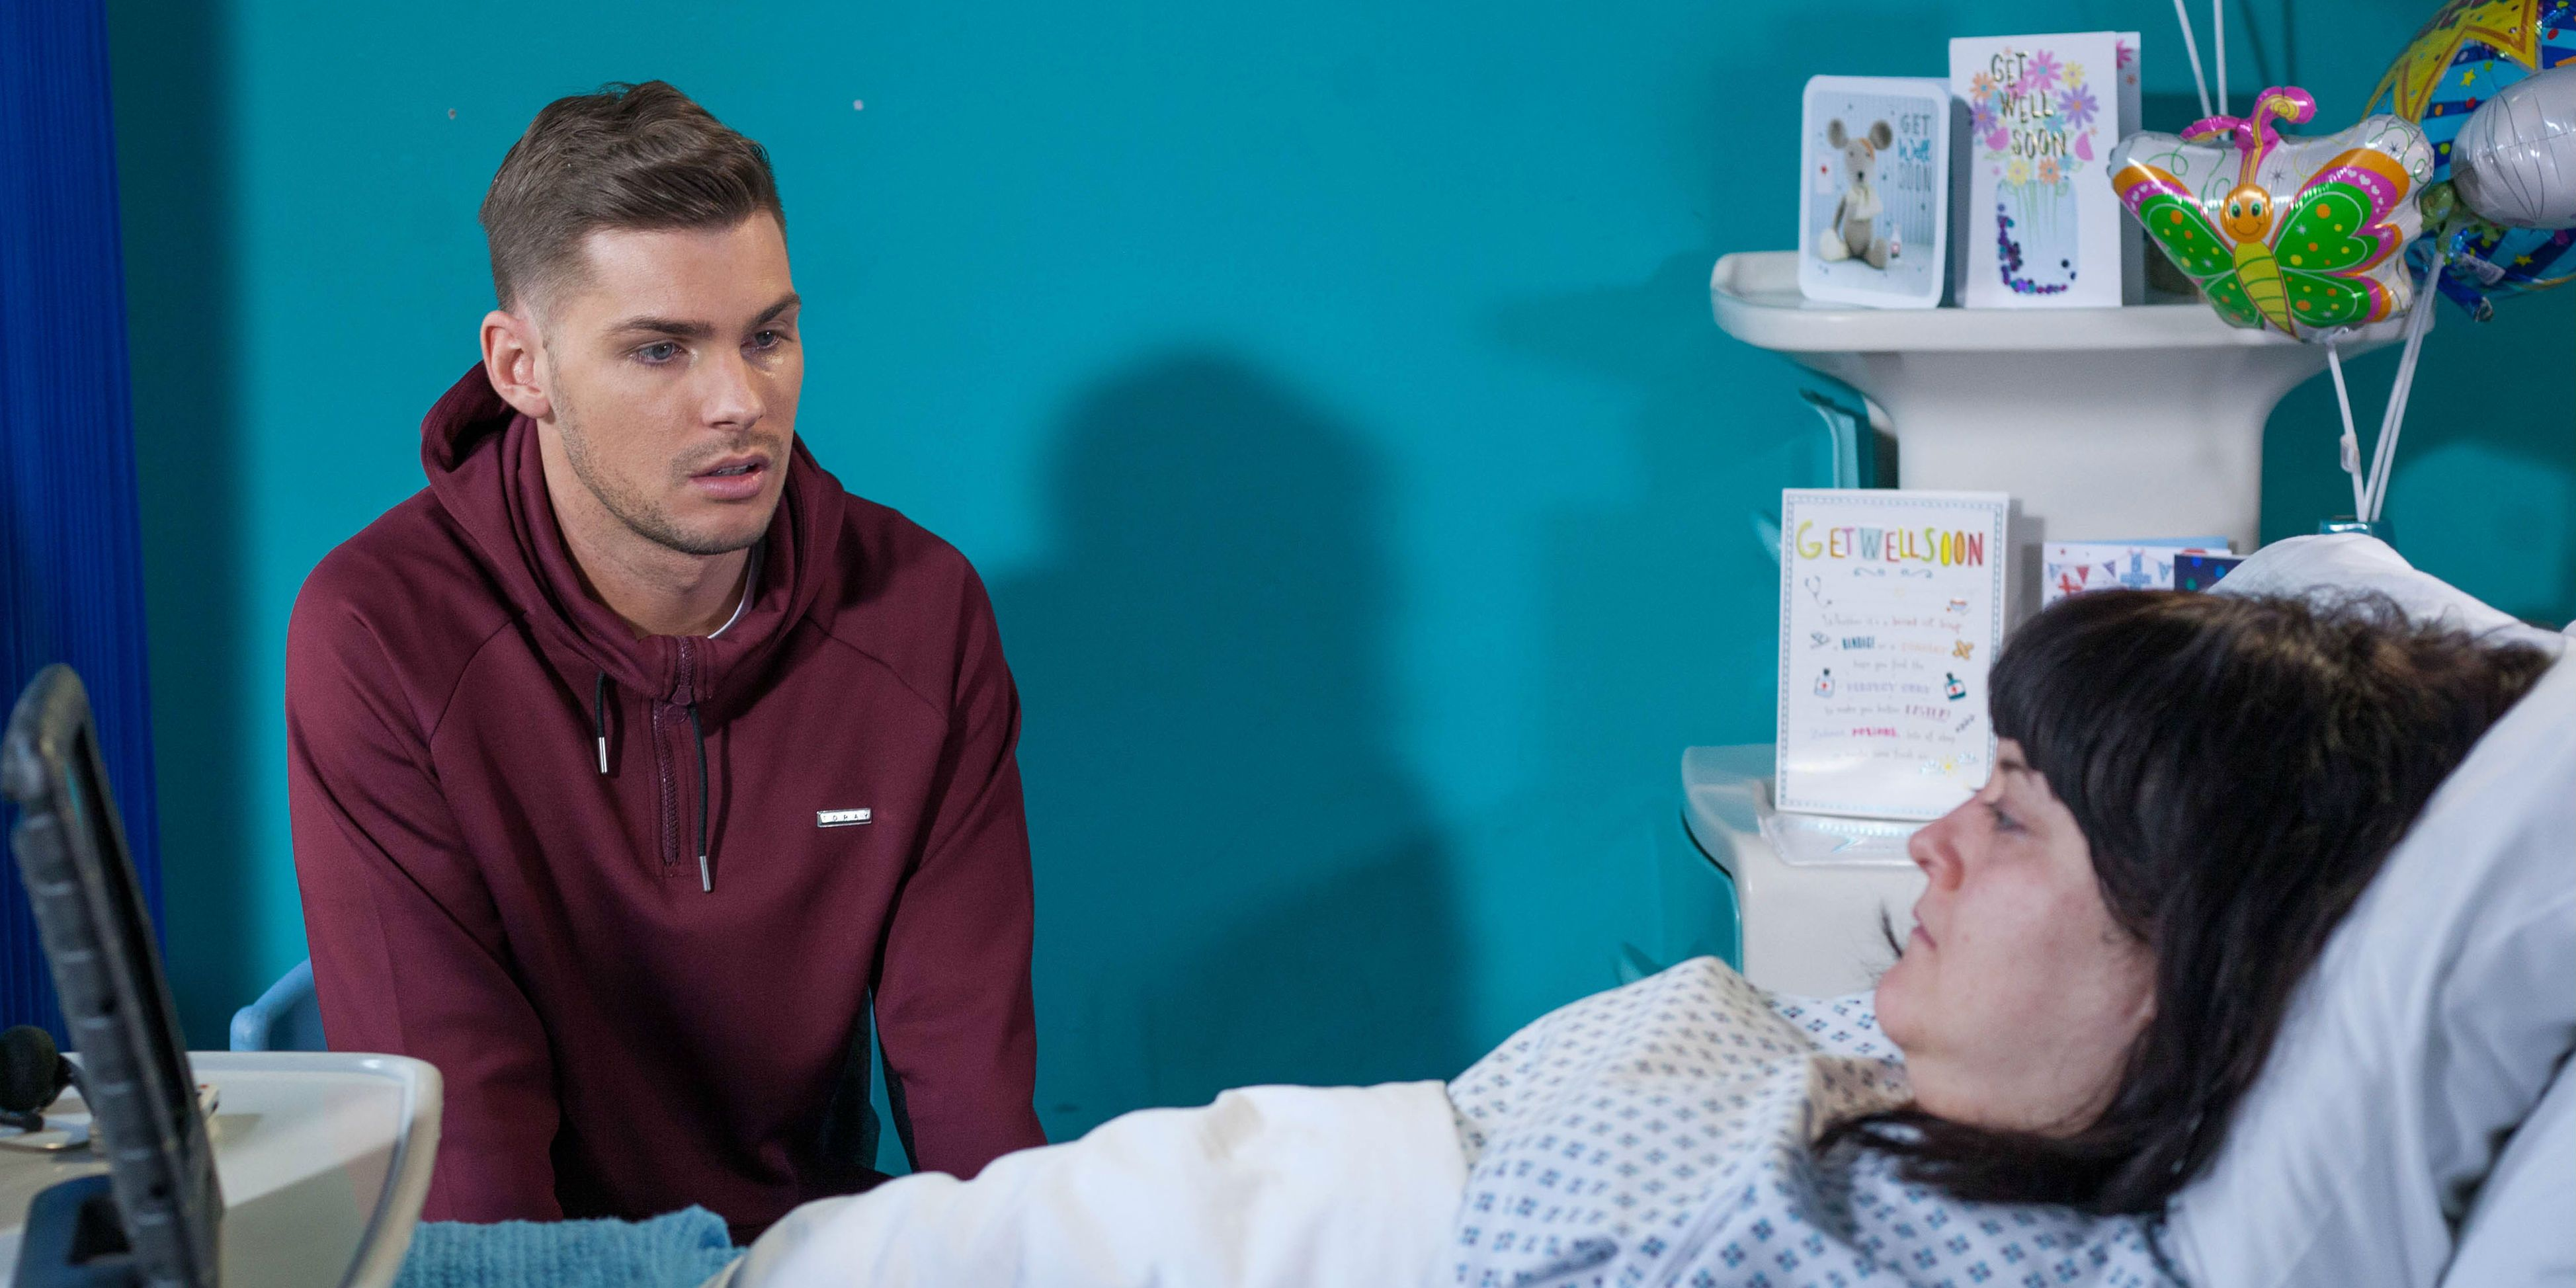 Tegan Lomax and Ste Hay at the hospital in Hollyoaks